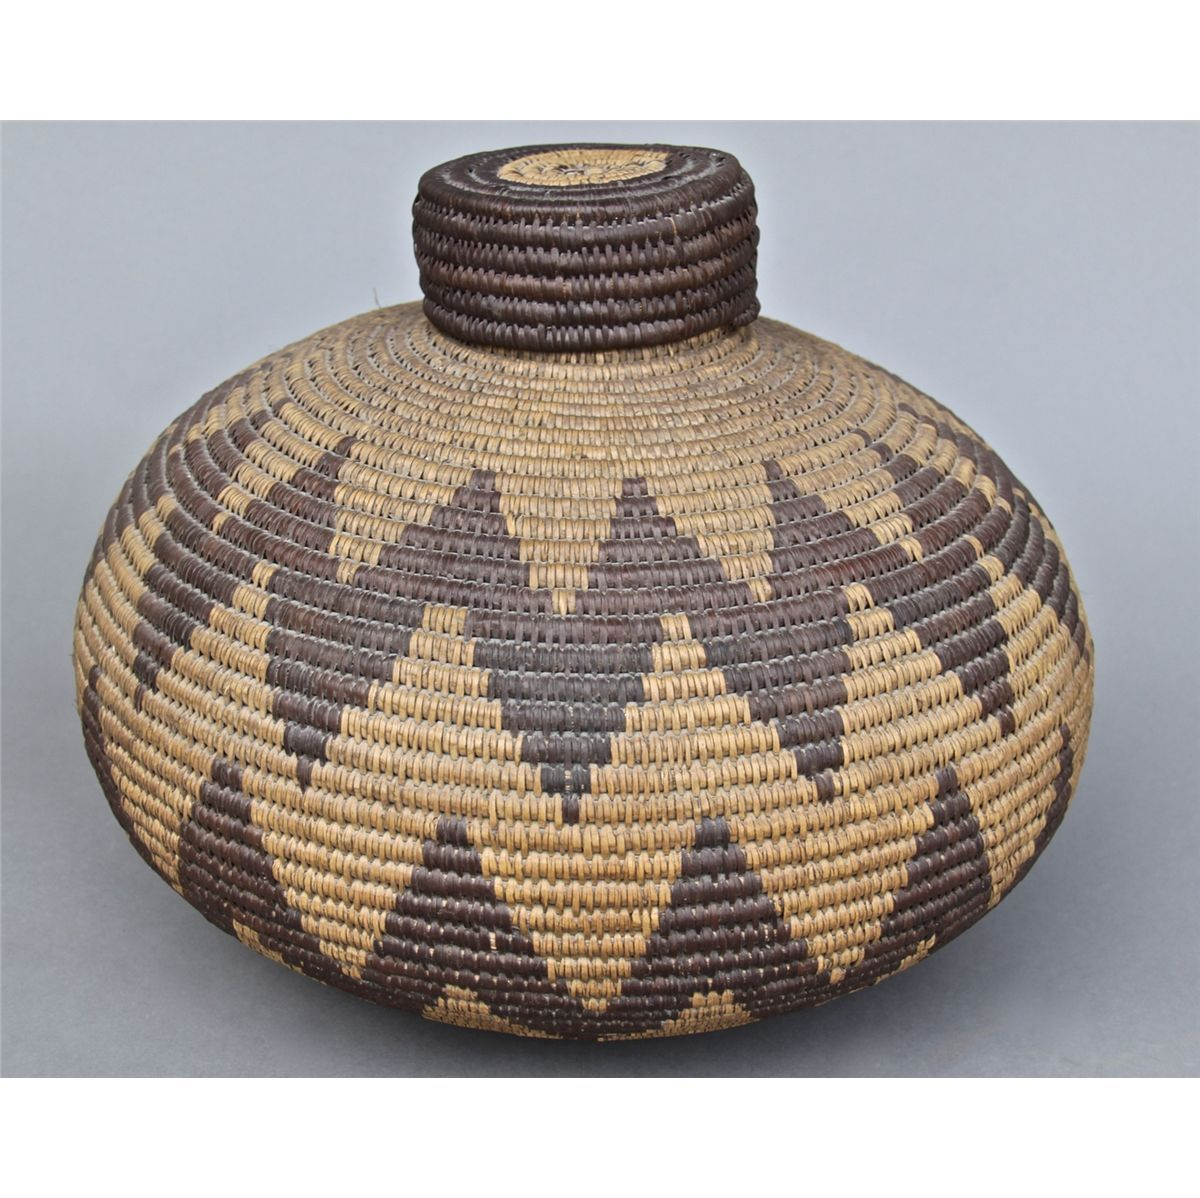 Traditional Native American Basket Weaving : Native american indian old woven basket lid